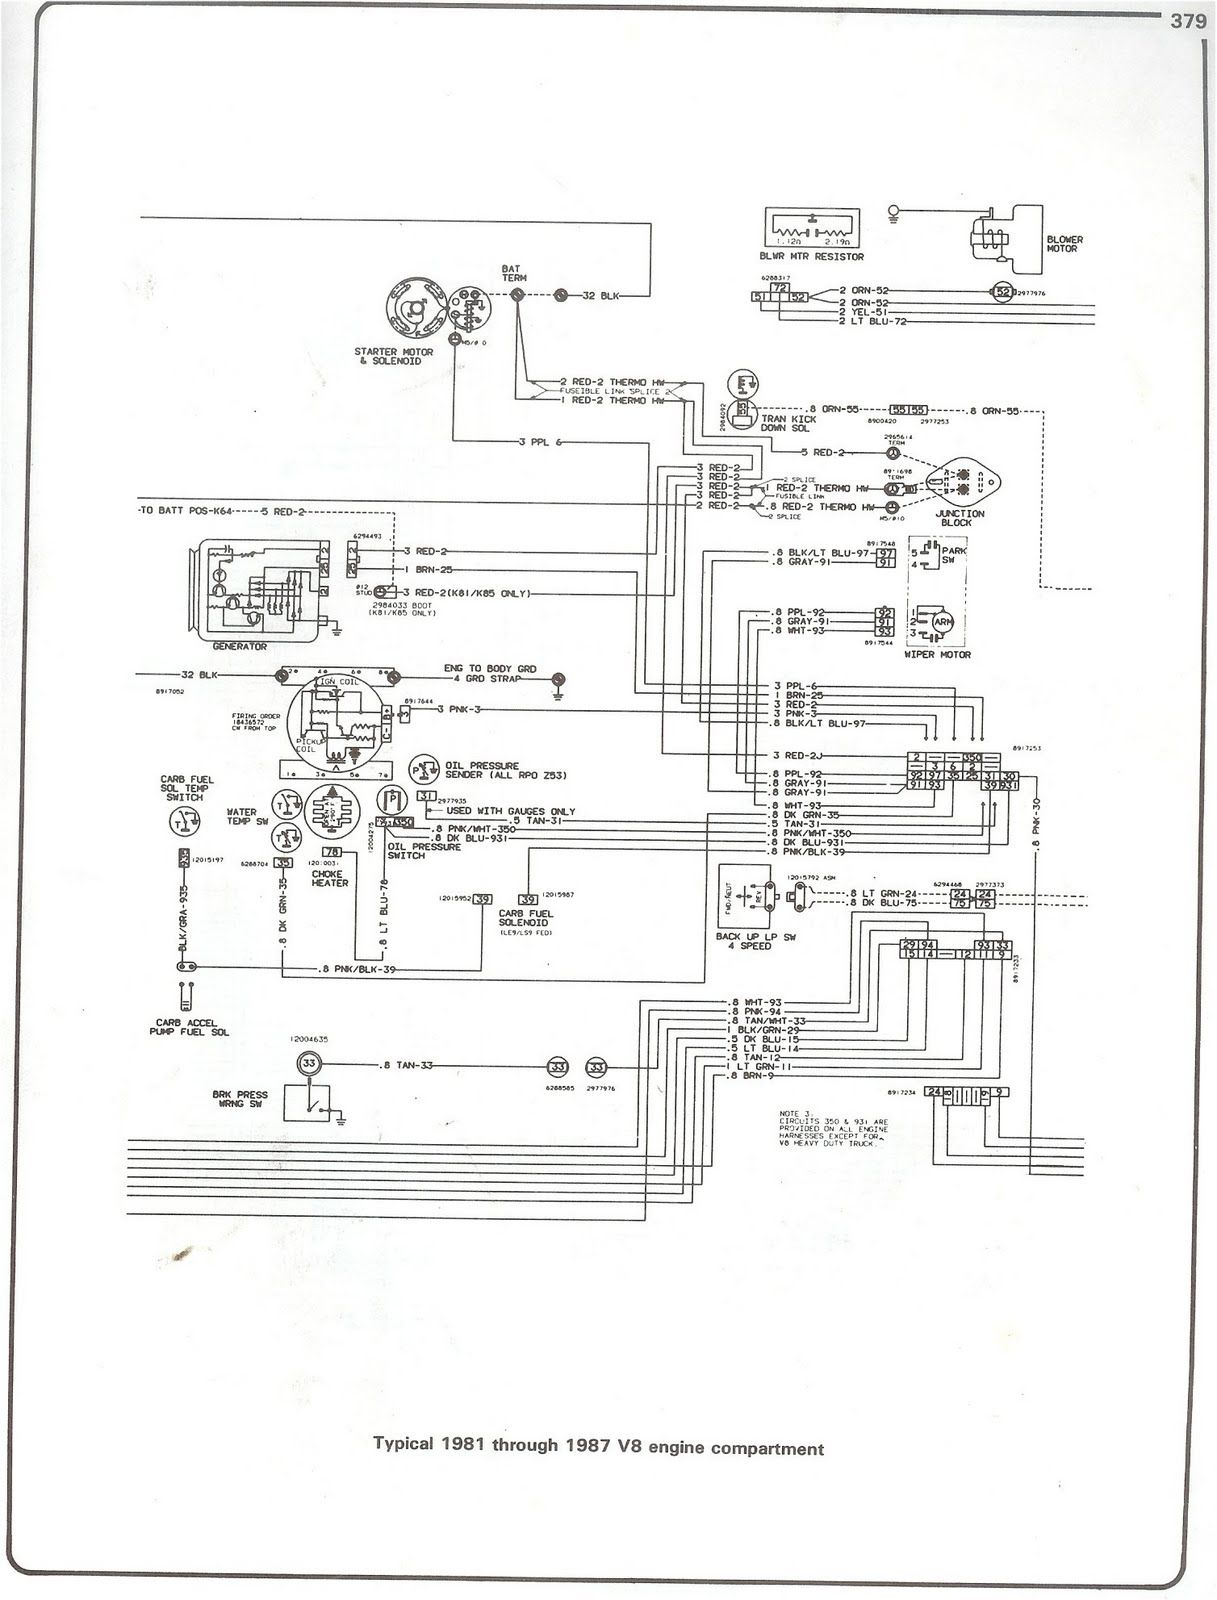 1999 Corvette Engine Diagram